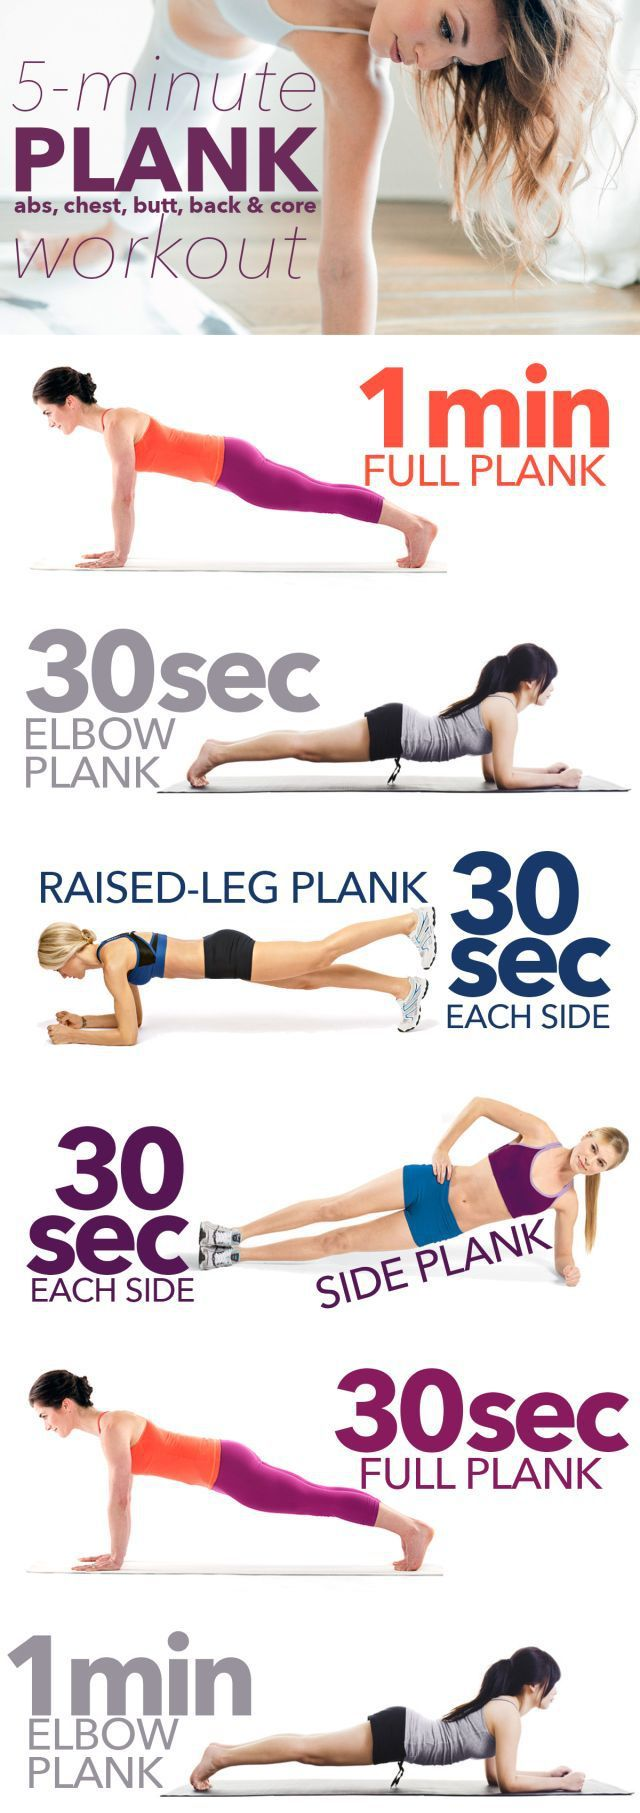 The-5-minute-full-body-plank-workout-that-requires-almost-no-movement...-but-youll-feel-it-working.jpg 640×1813 pixels http://www.4myprosperity.com/?page_id=19